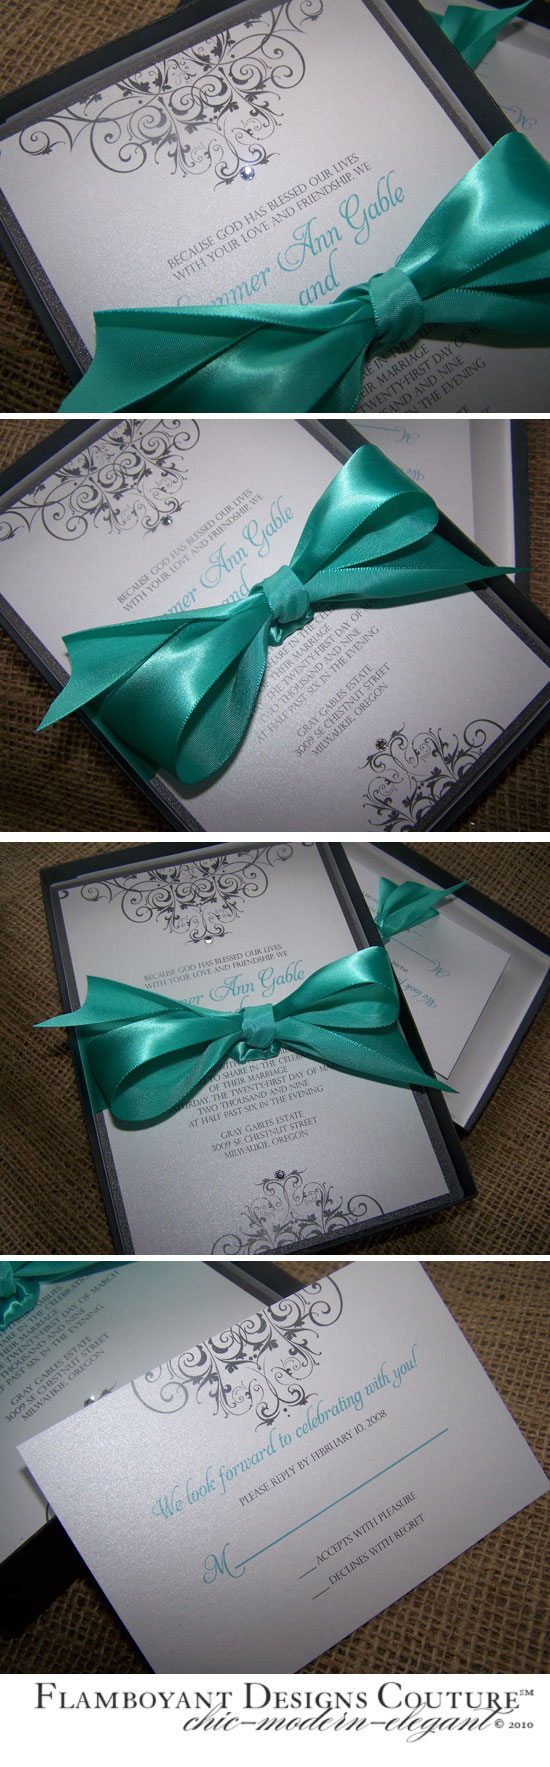 Gable: Elegant Boxed Wedding Invitation